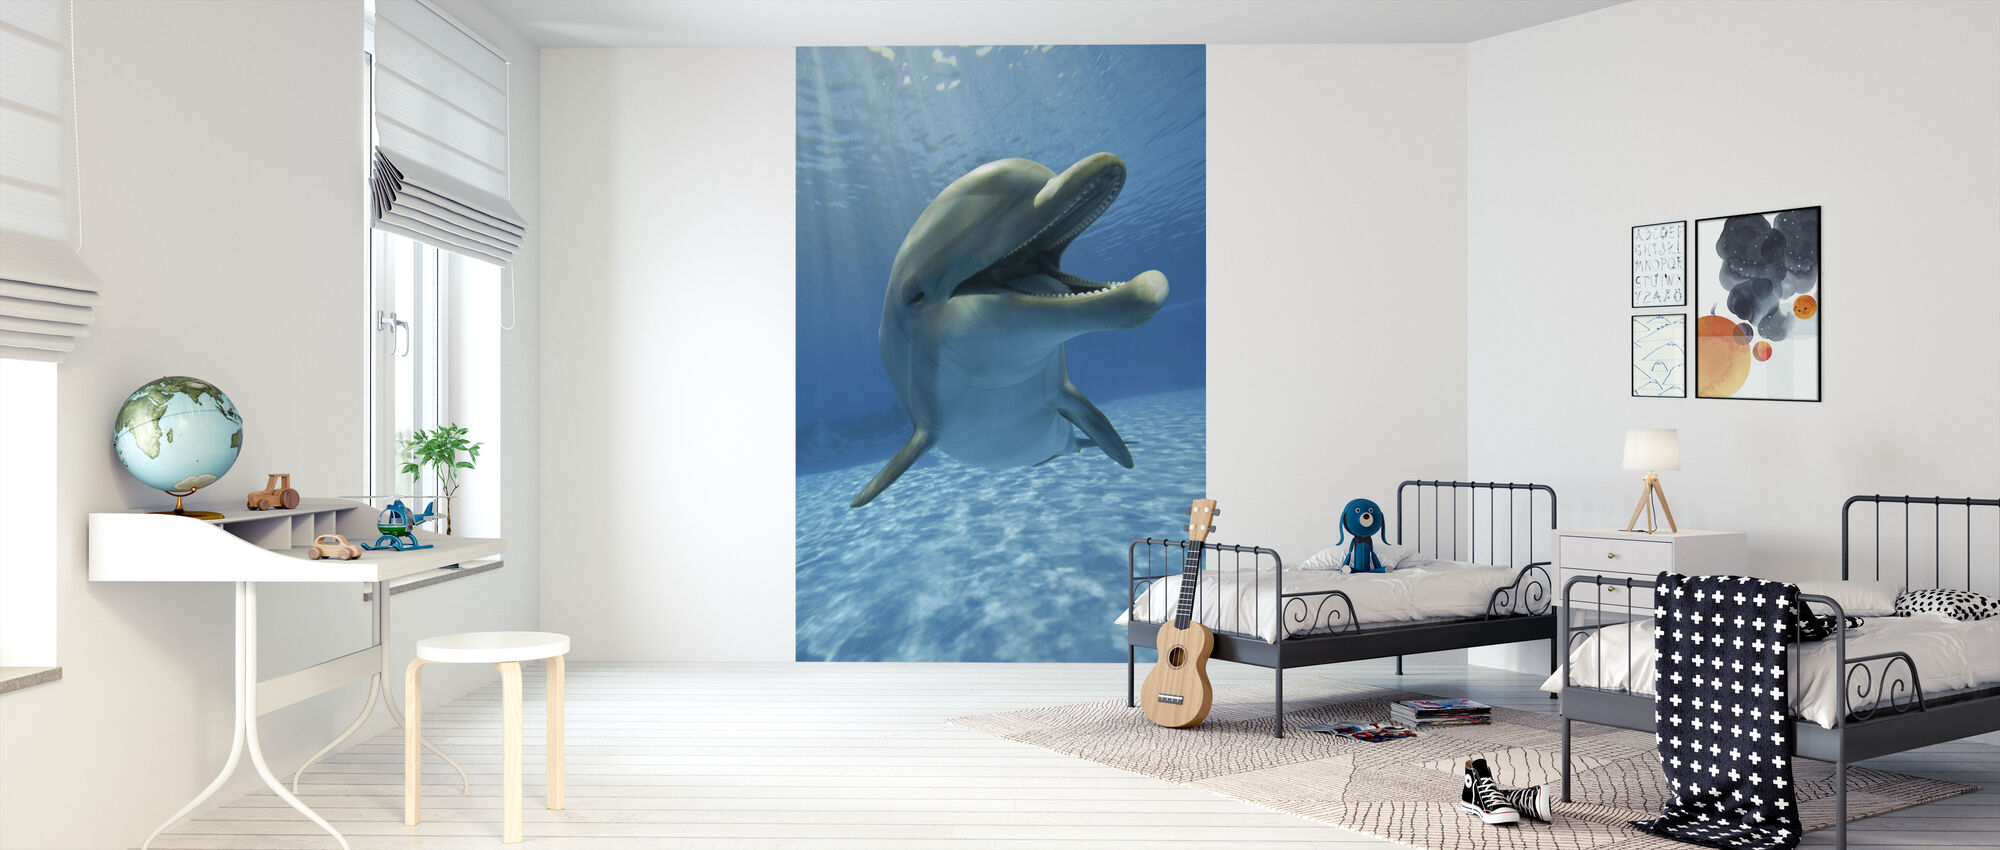 Encounter with Dolphin - Wallpaper - Kids Room